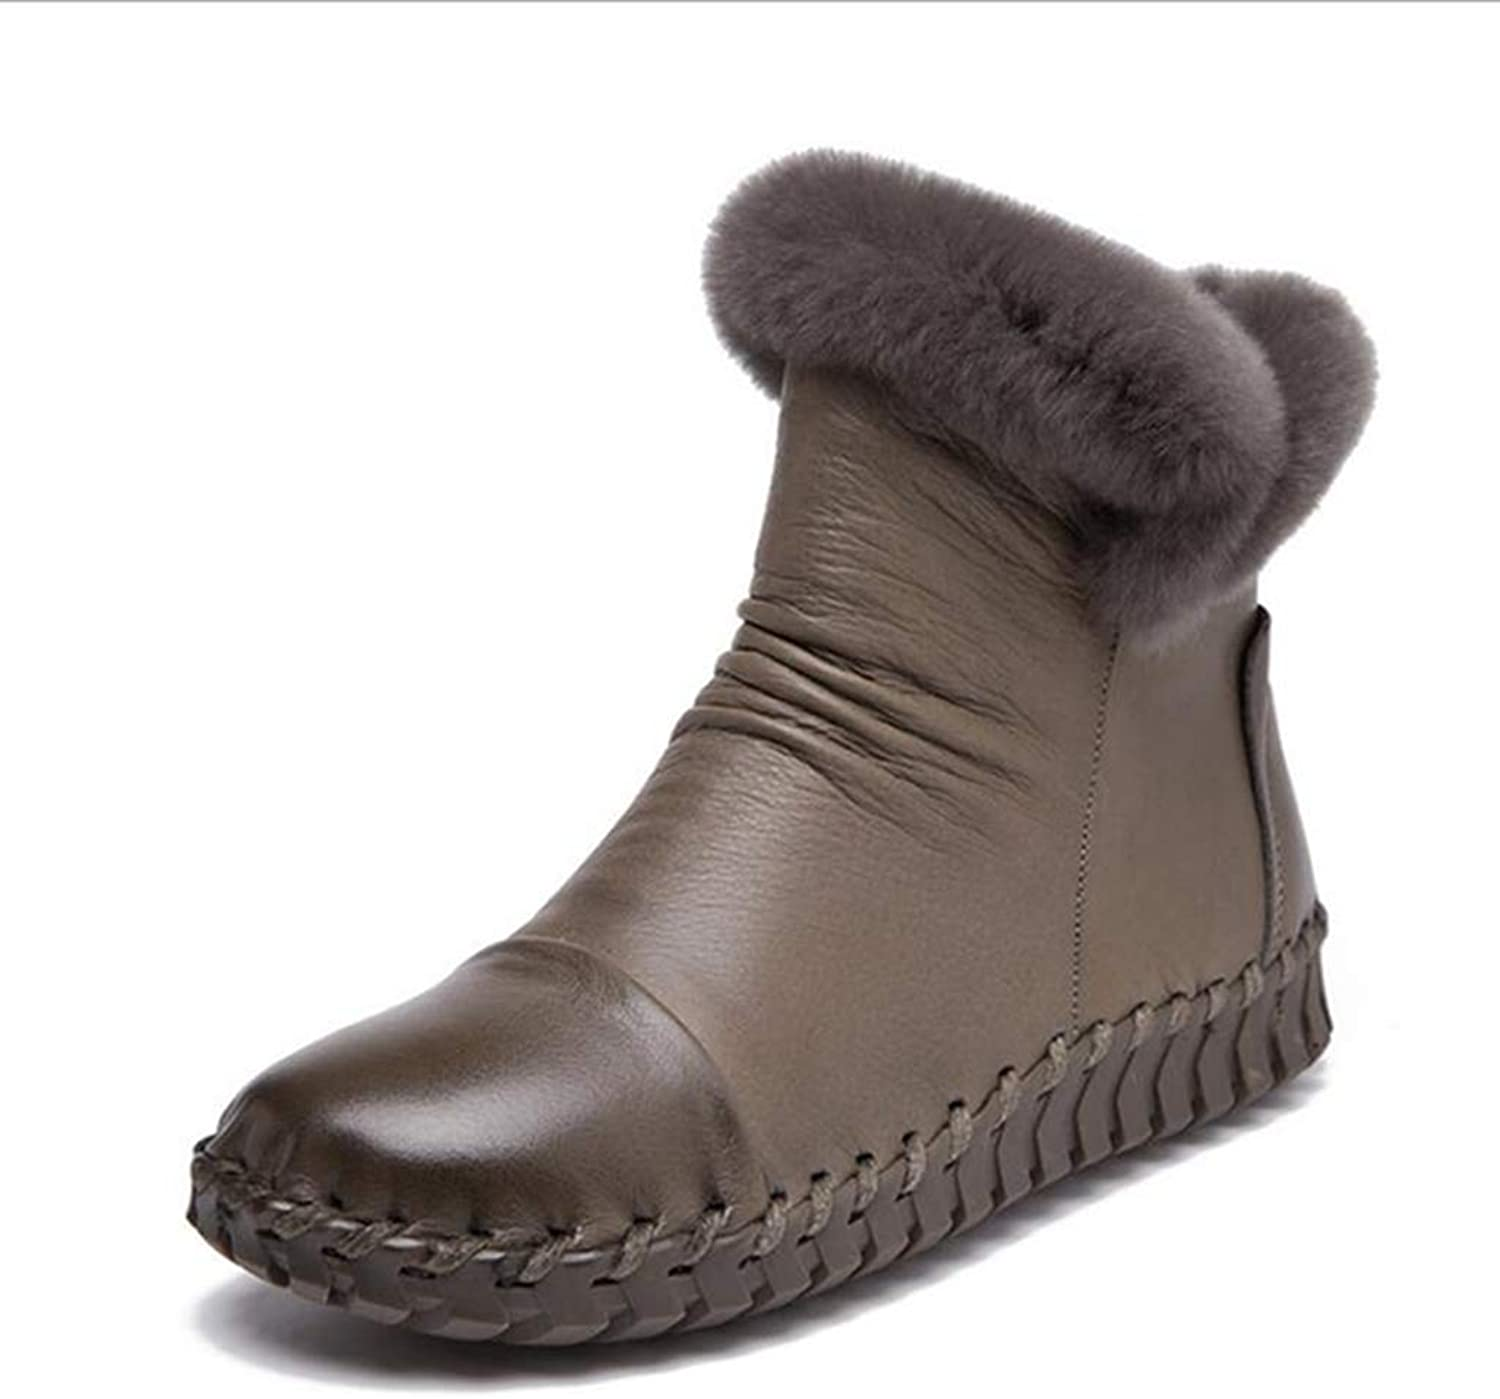 Fay Waters Women's Genuine Leather Combat Style Round Toe Flat Ankle Bootie Rabbit Fur Snow Boots